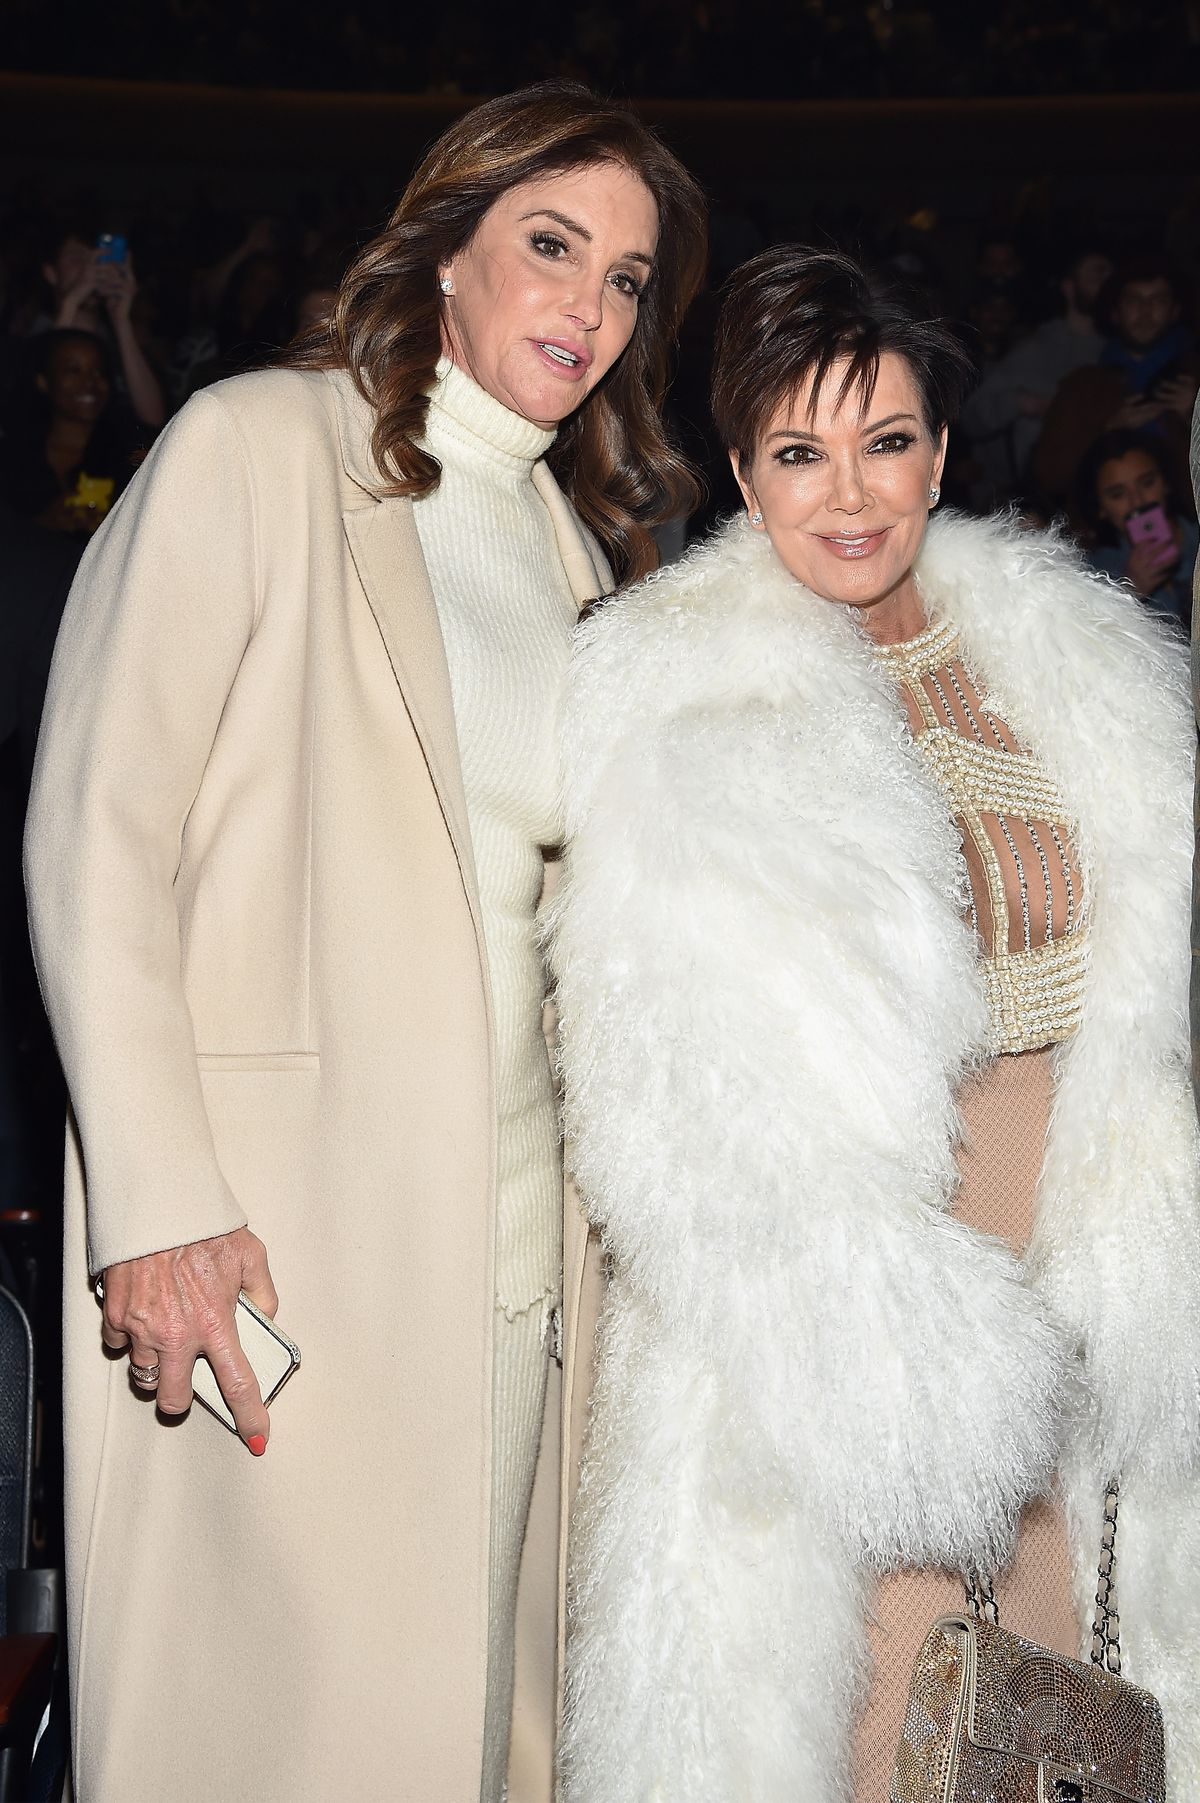 Caitlyn and Kris Jenner Kanye West Yeezy Season 3 - Front Row